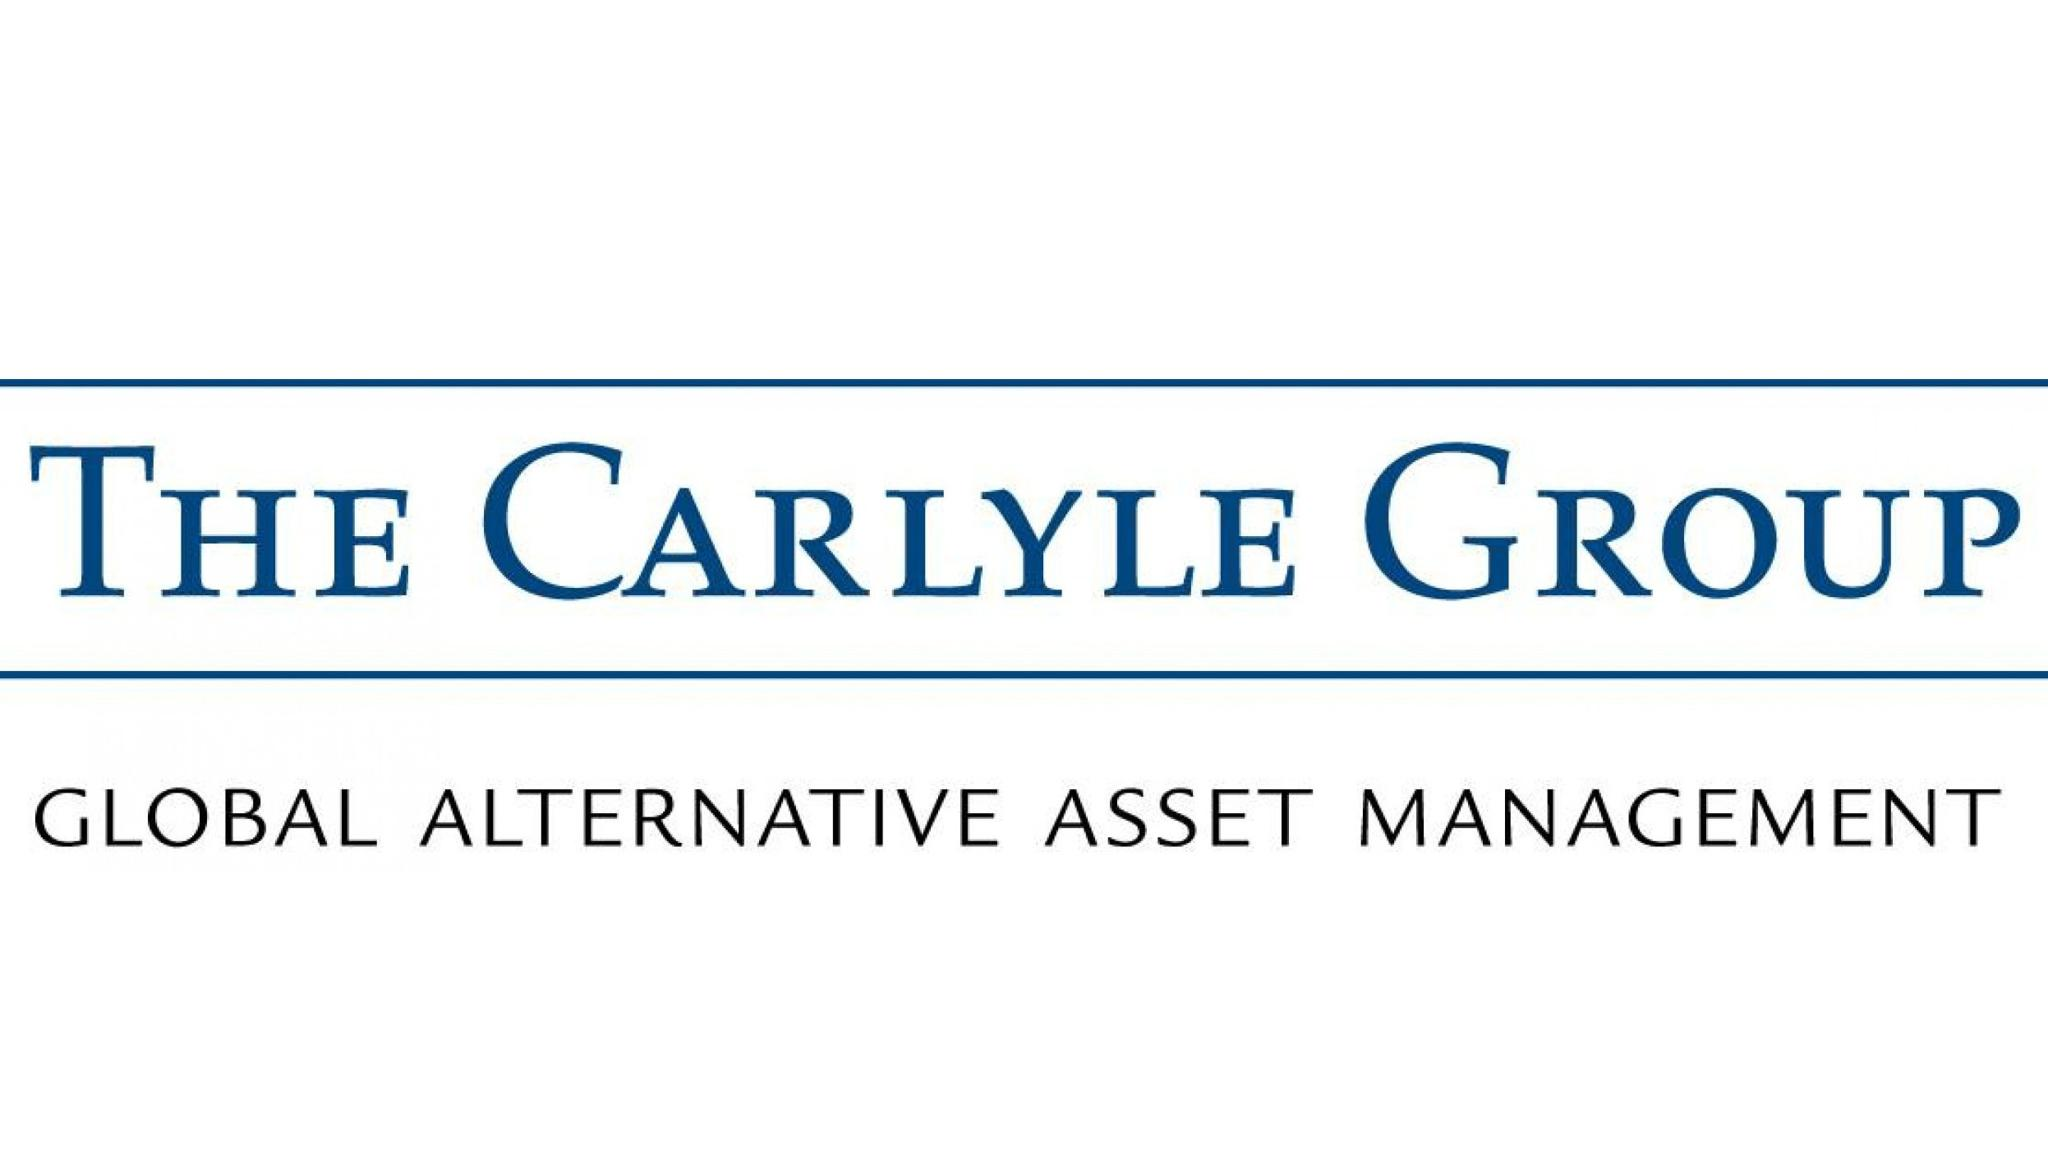 Global alternative asset manager, The Carlyle